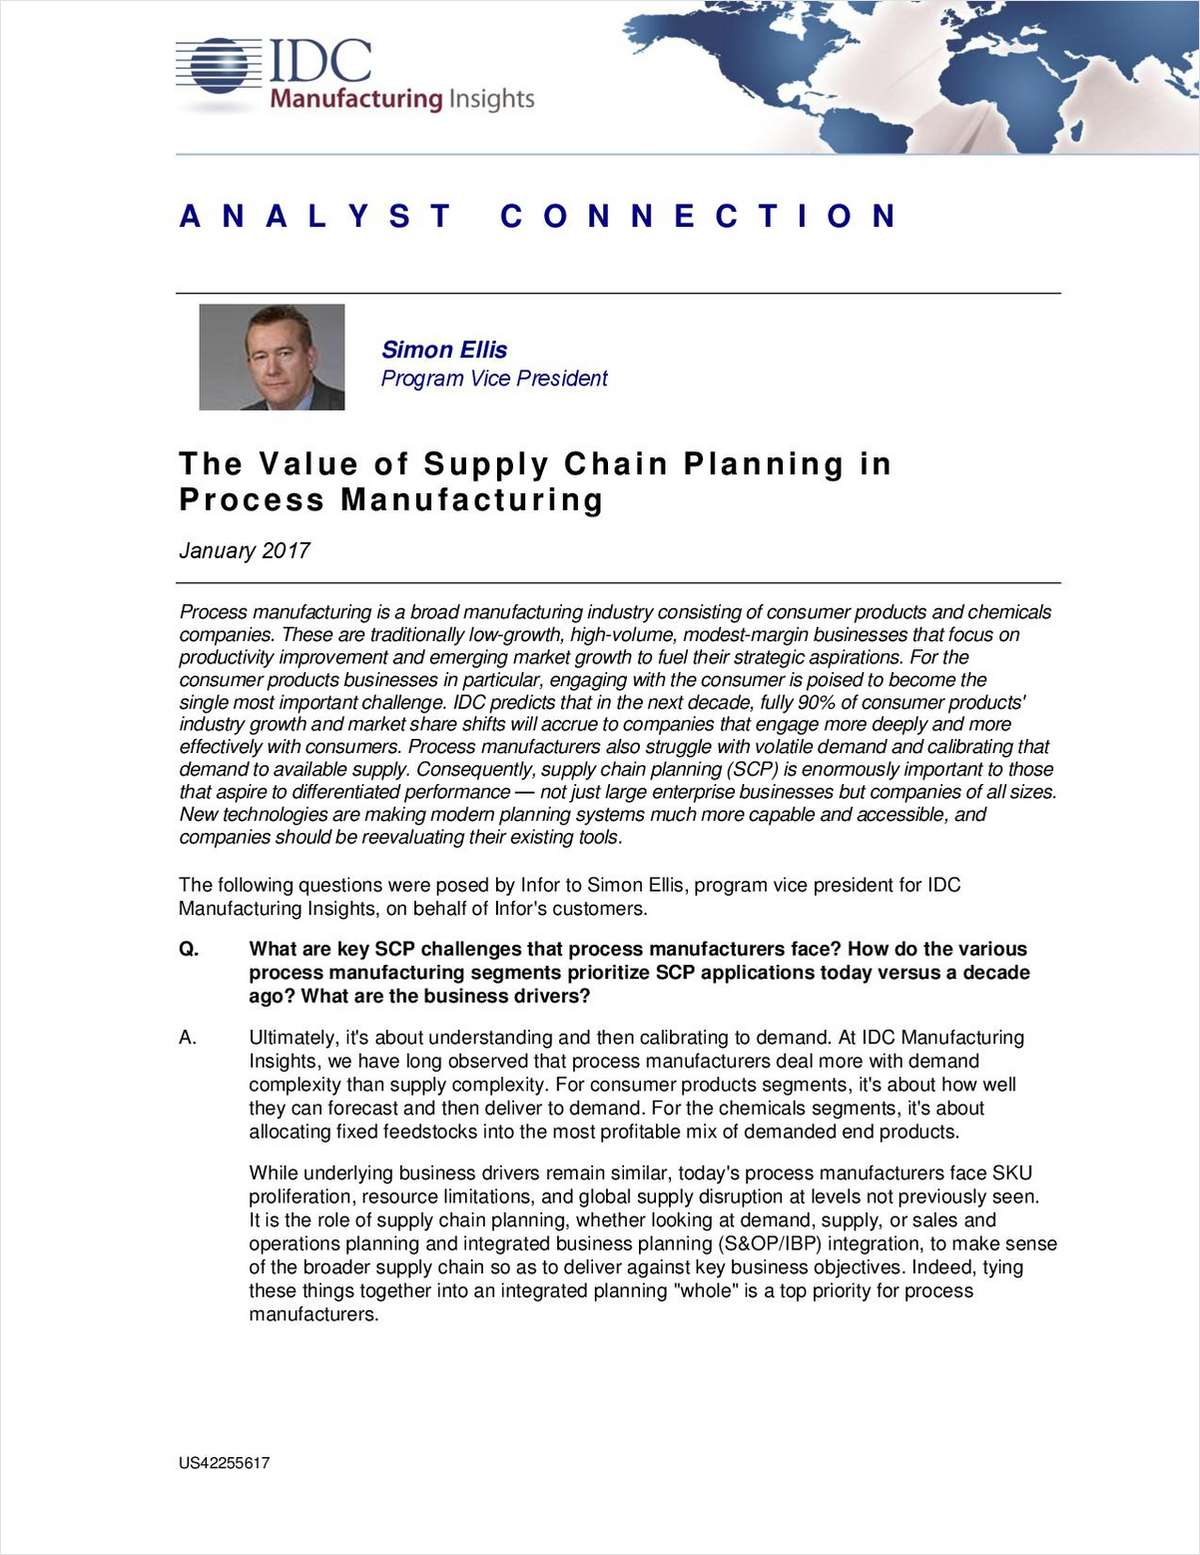 The Value of Supply Chain Planning in Process Manufacturing